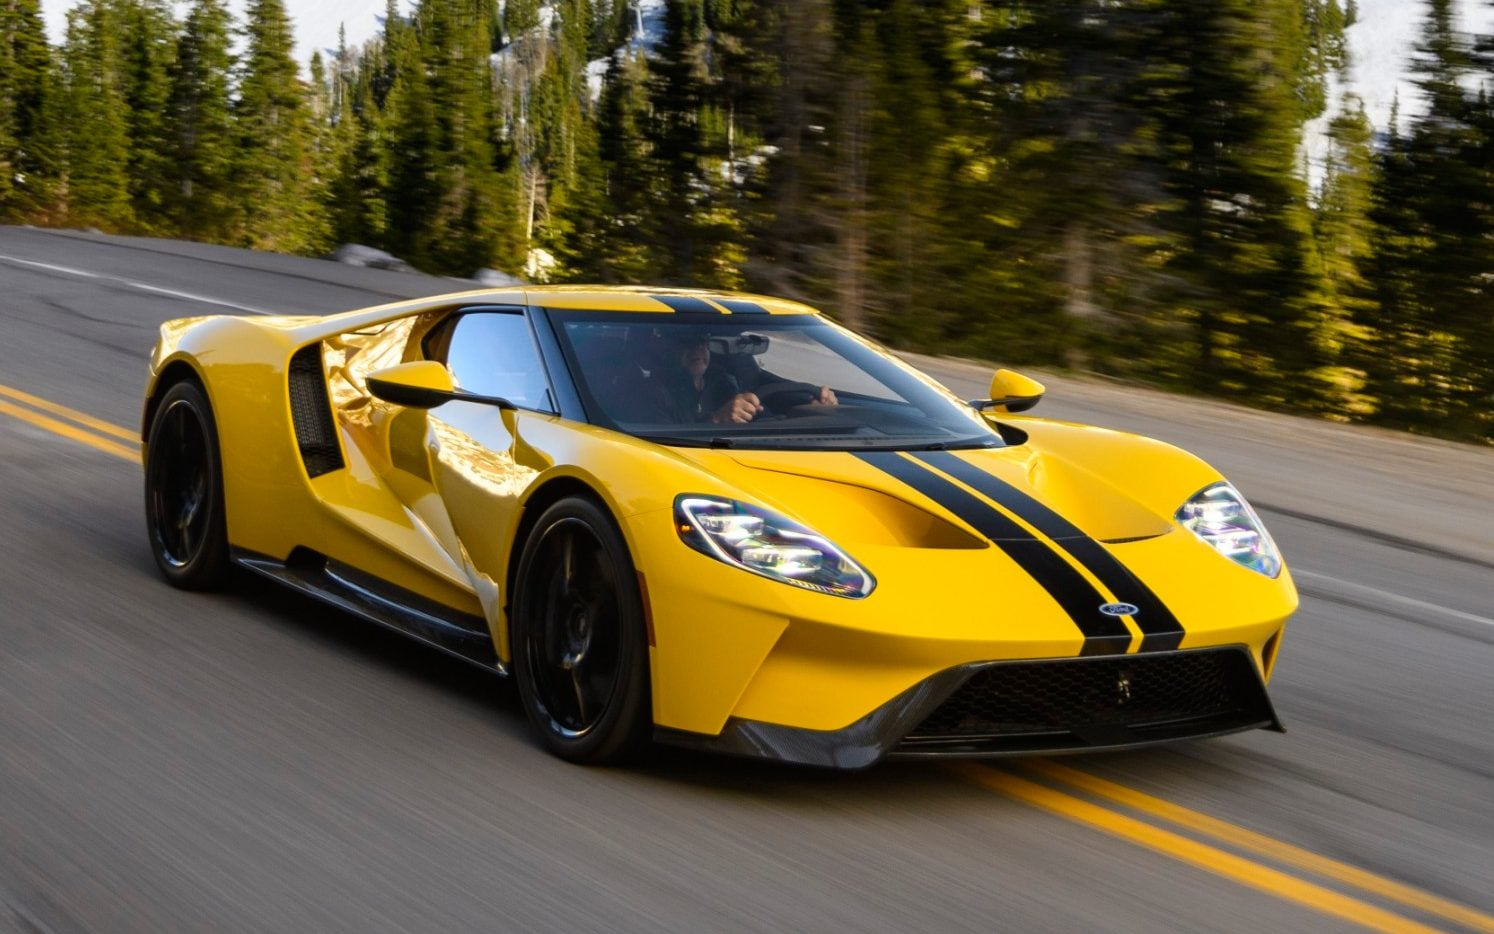 2017 Ford Gt Review Beauty Brutality And Magic Sauce